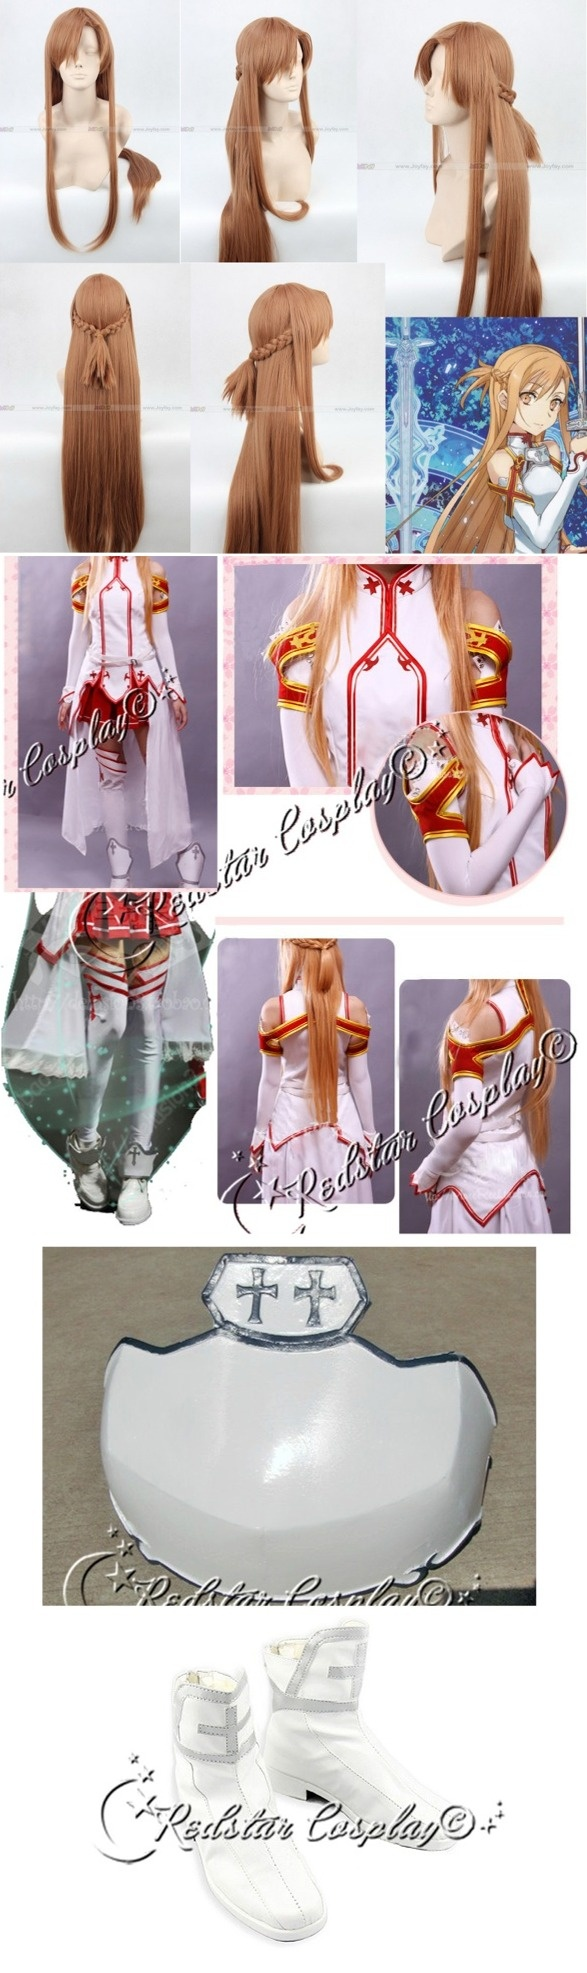 Please, for the love of GOD let me have this!!!! I <3 Asuna!